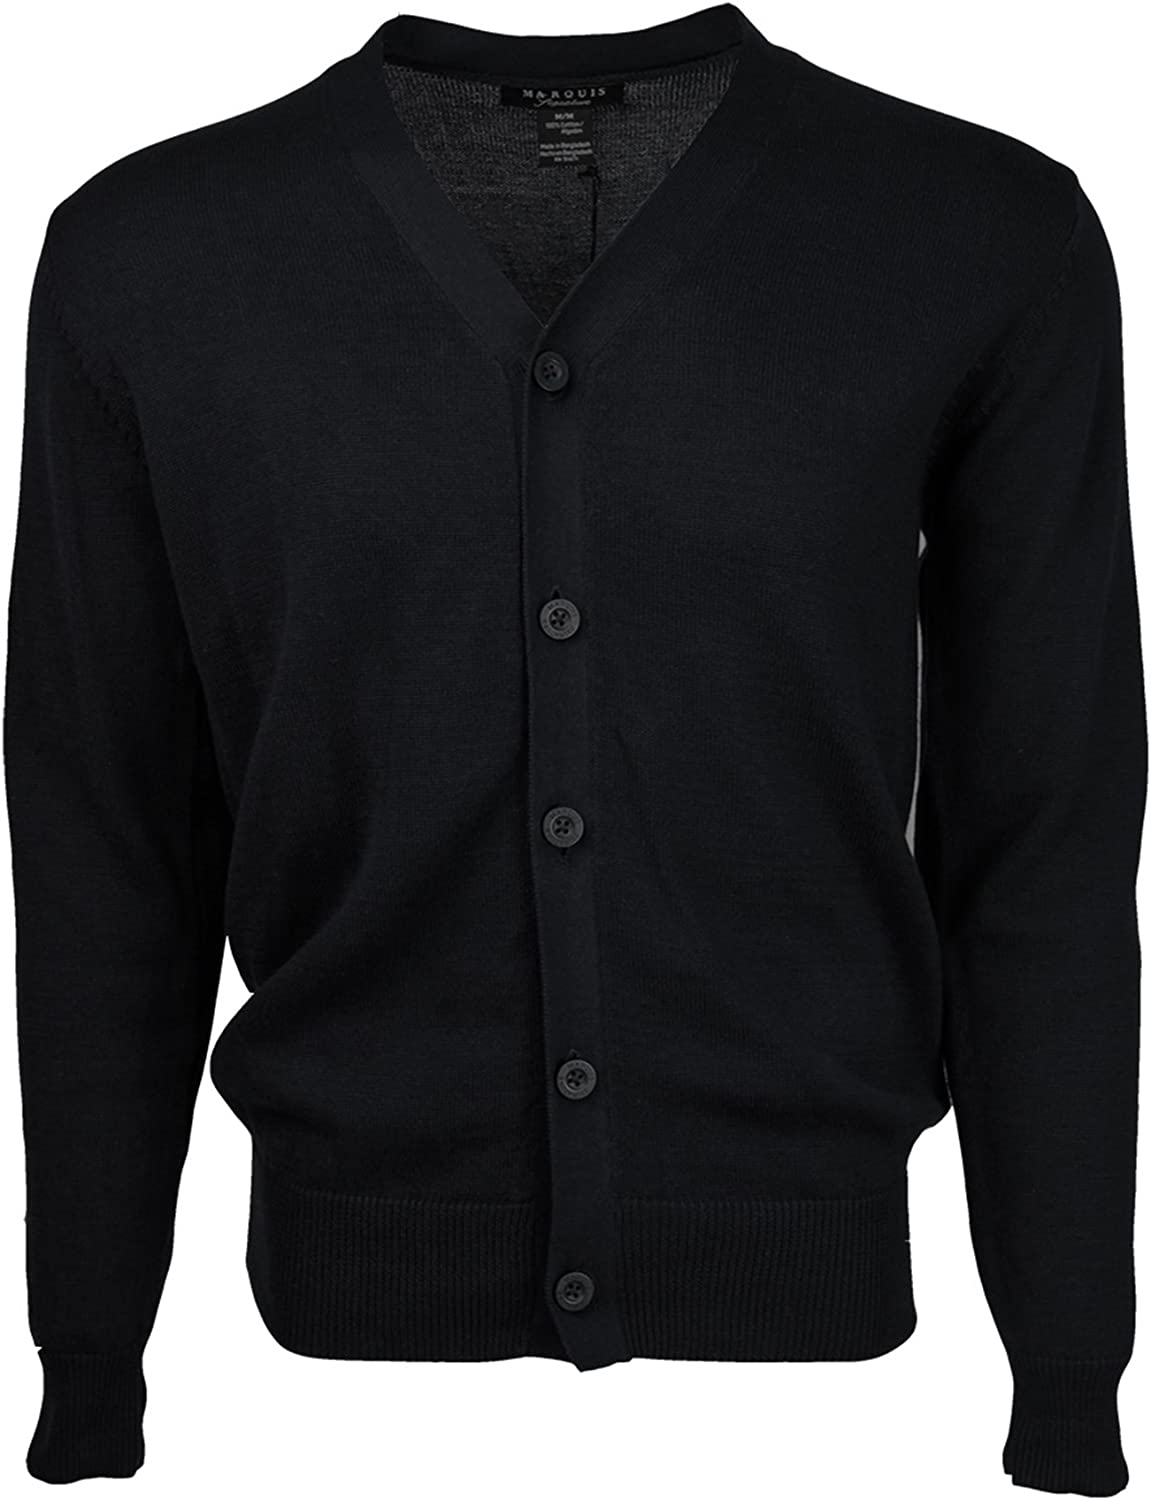 Bargain Dealing full price reduction sale Marquis Men's Black Solid Cotton Cardigan Button Sweater